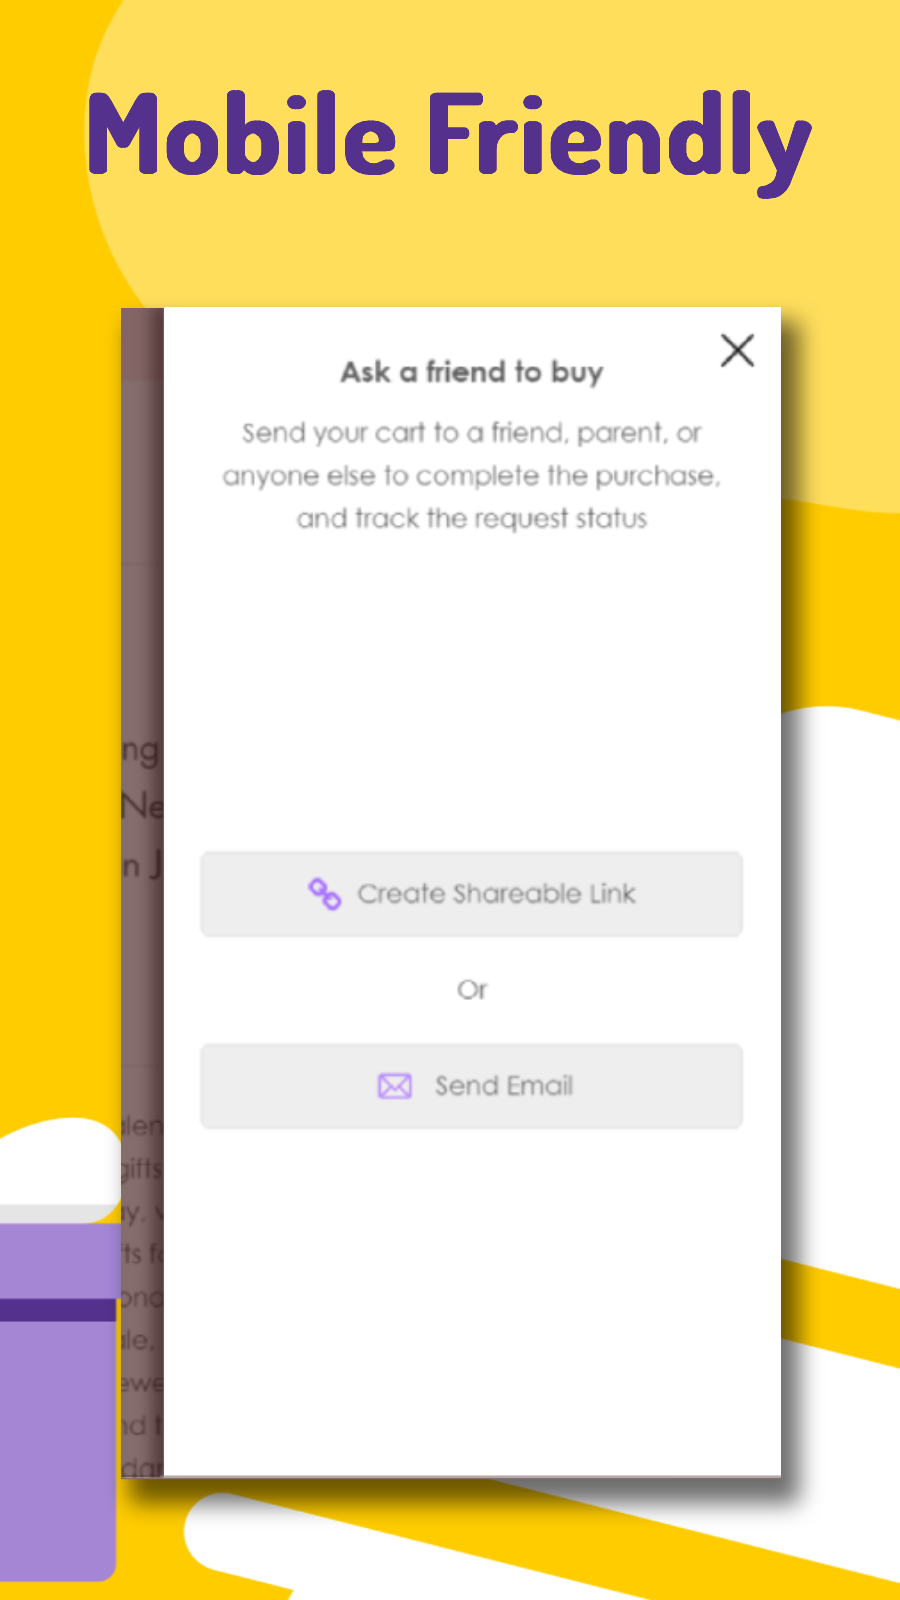 The entire flow is accessible for your mobile visitors